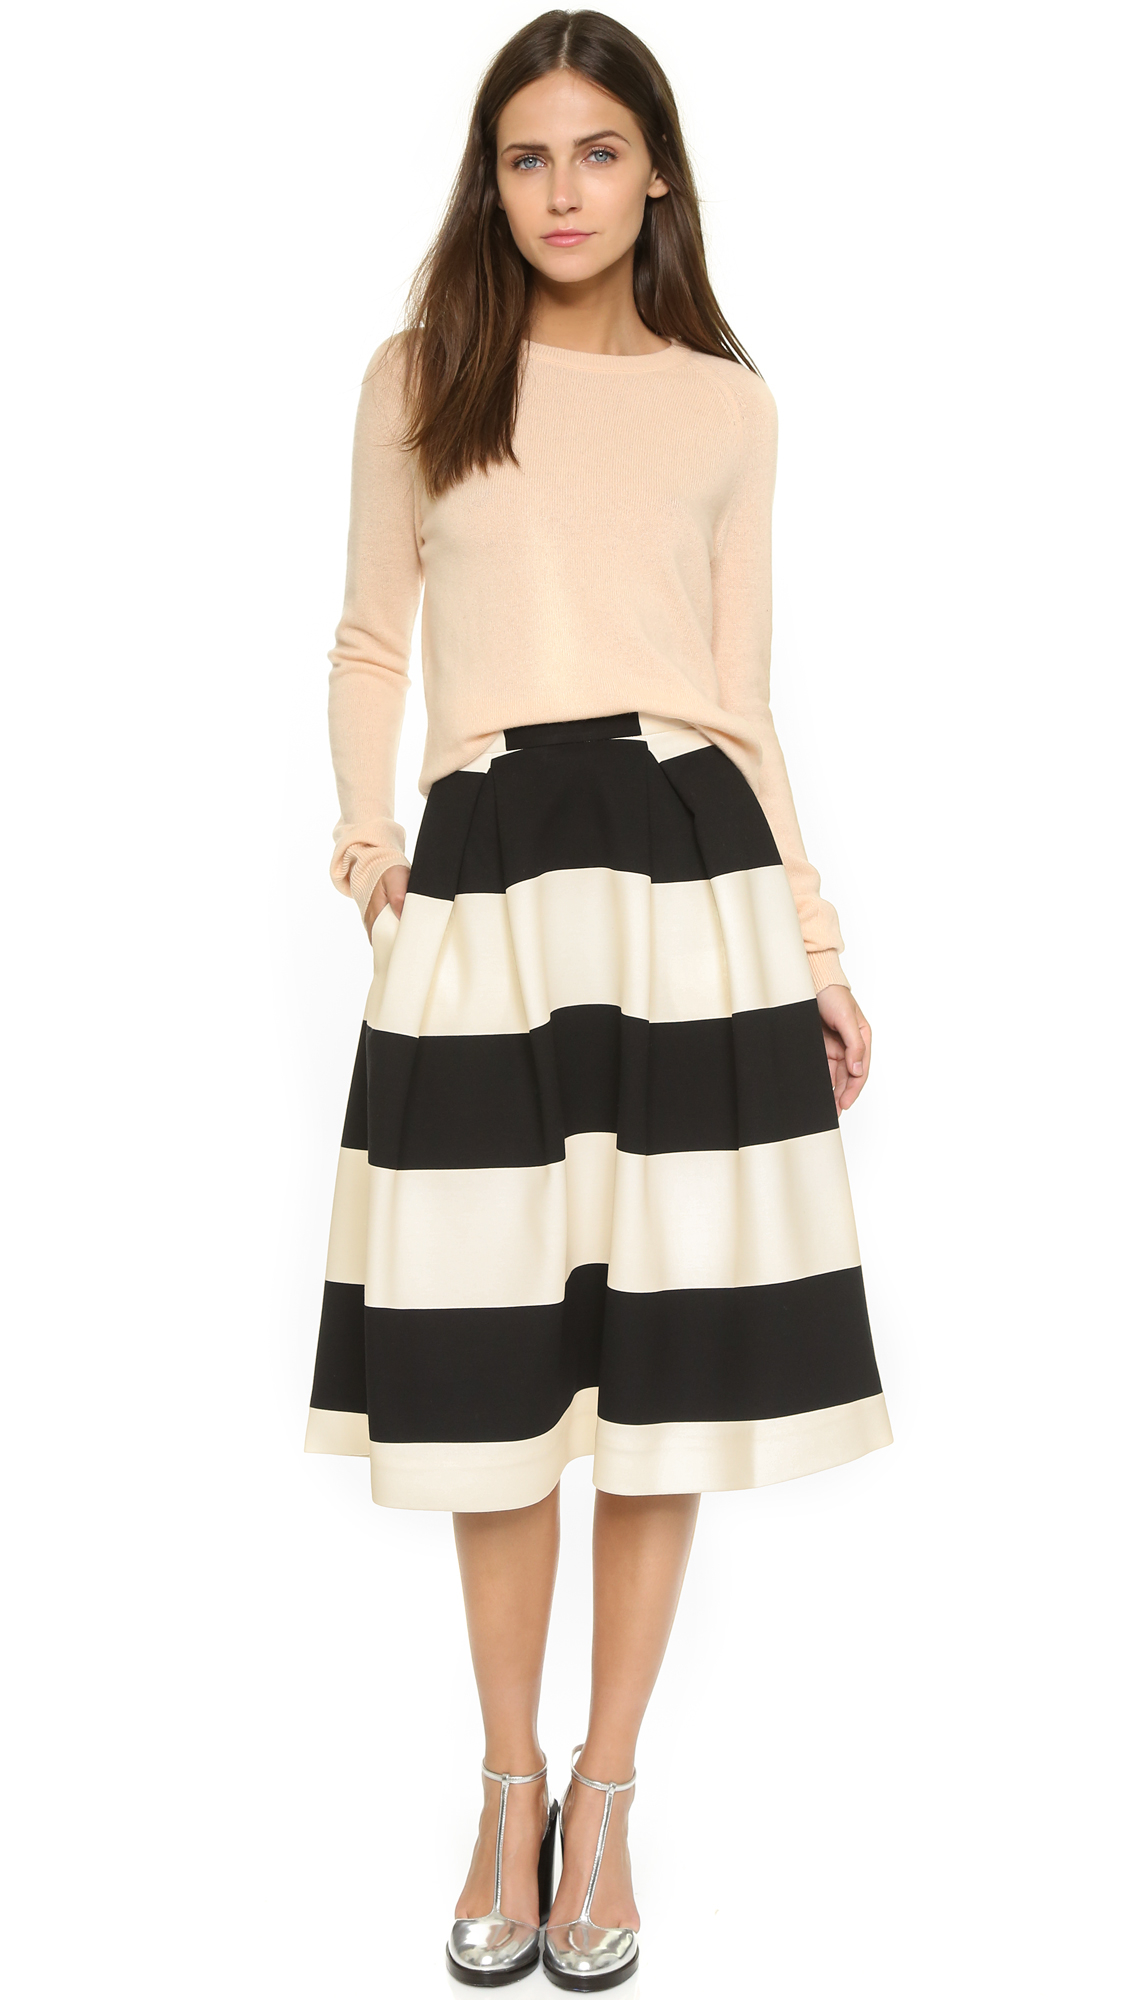 Nicholas N / Orchard Stripe Ball Skirt in Black | Lyst